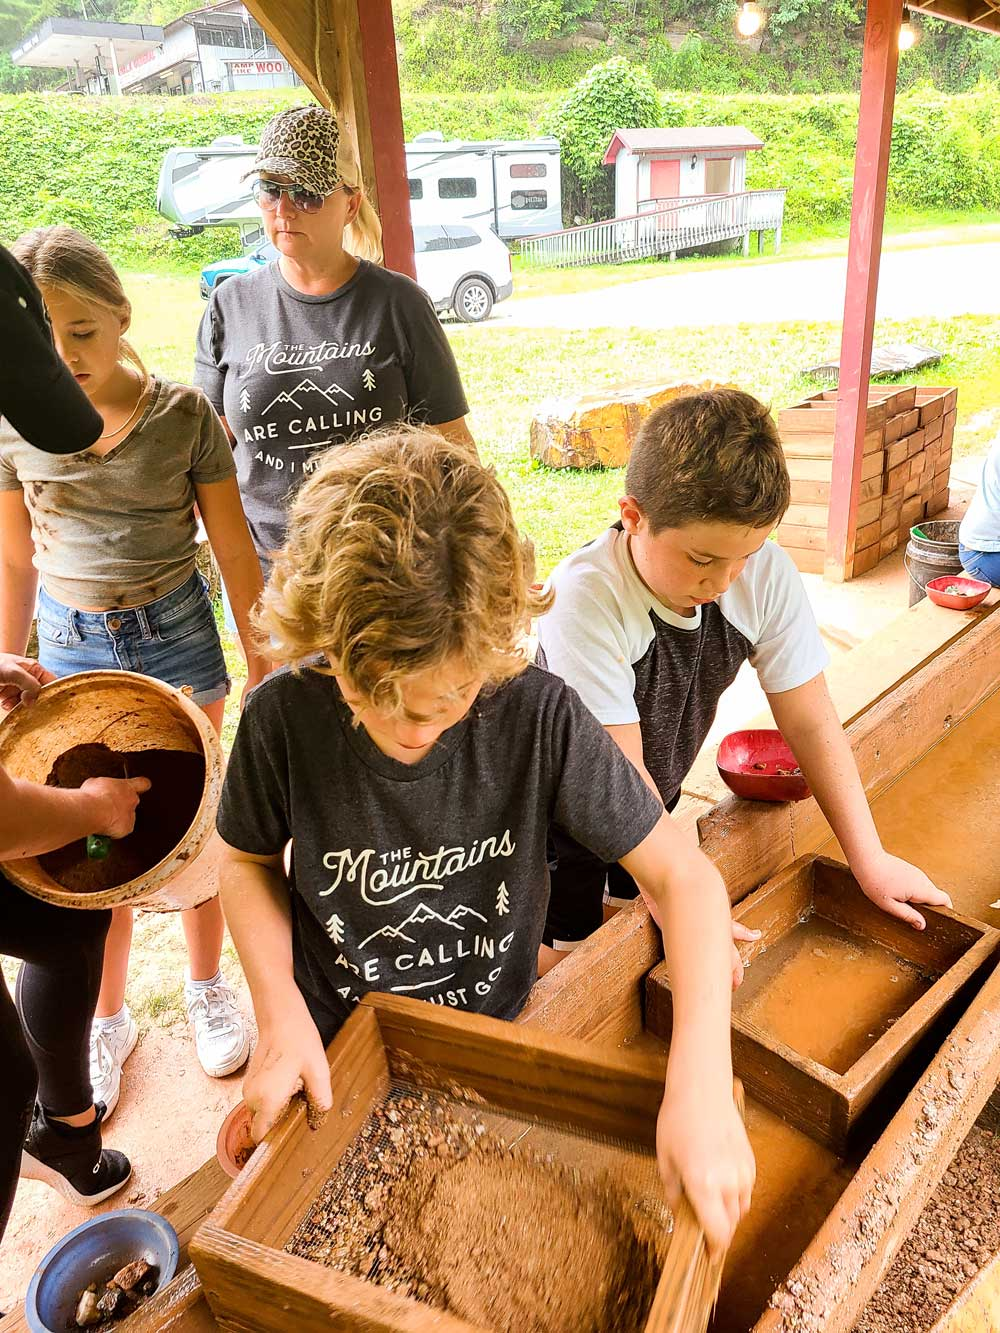 Best Things to Do in Bryson City NC with Kids - Try Gem Mining with the Family   Things to do in Bryson City NC by popular Florida travel blog, Fresh Mommy Blog: image of two young boys mining for gems.